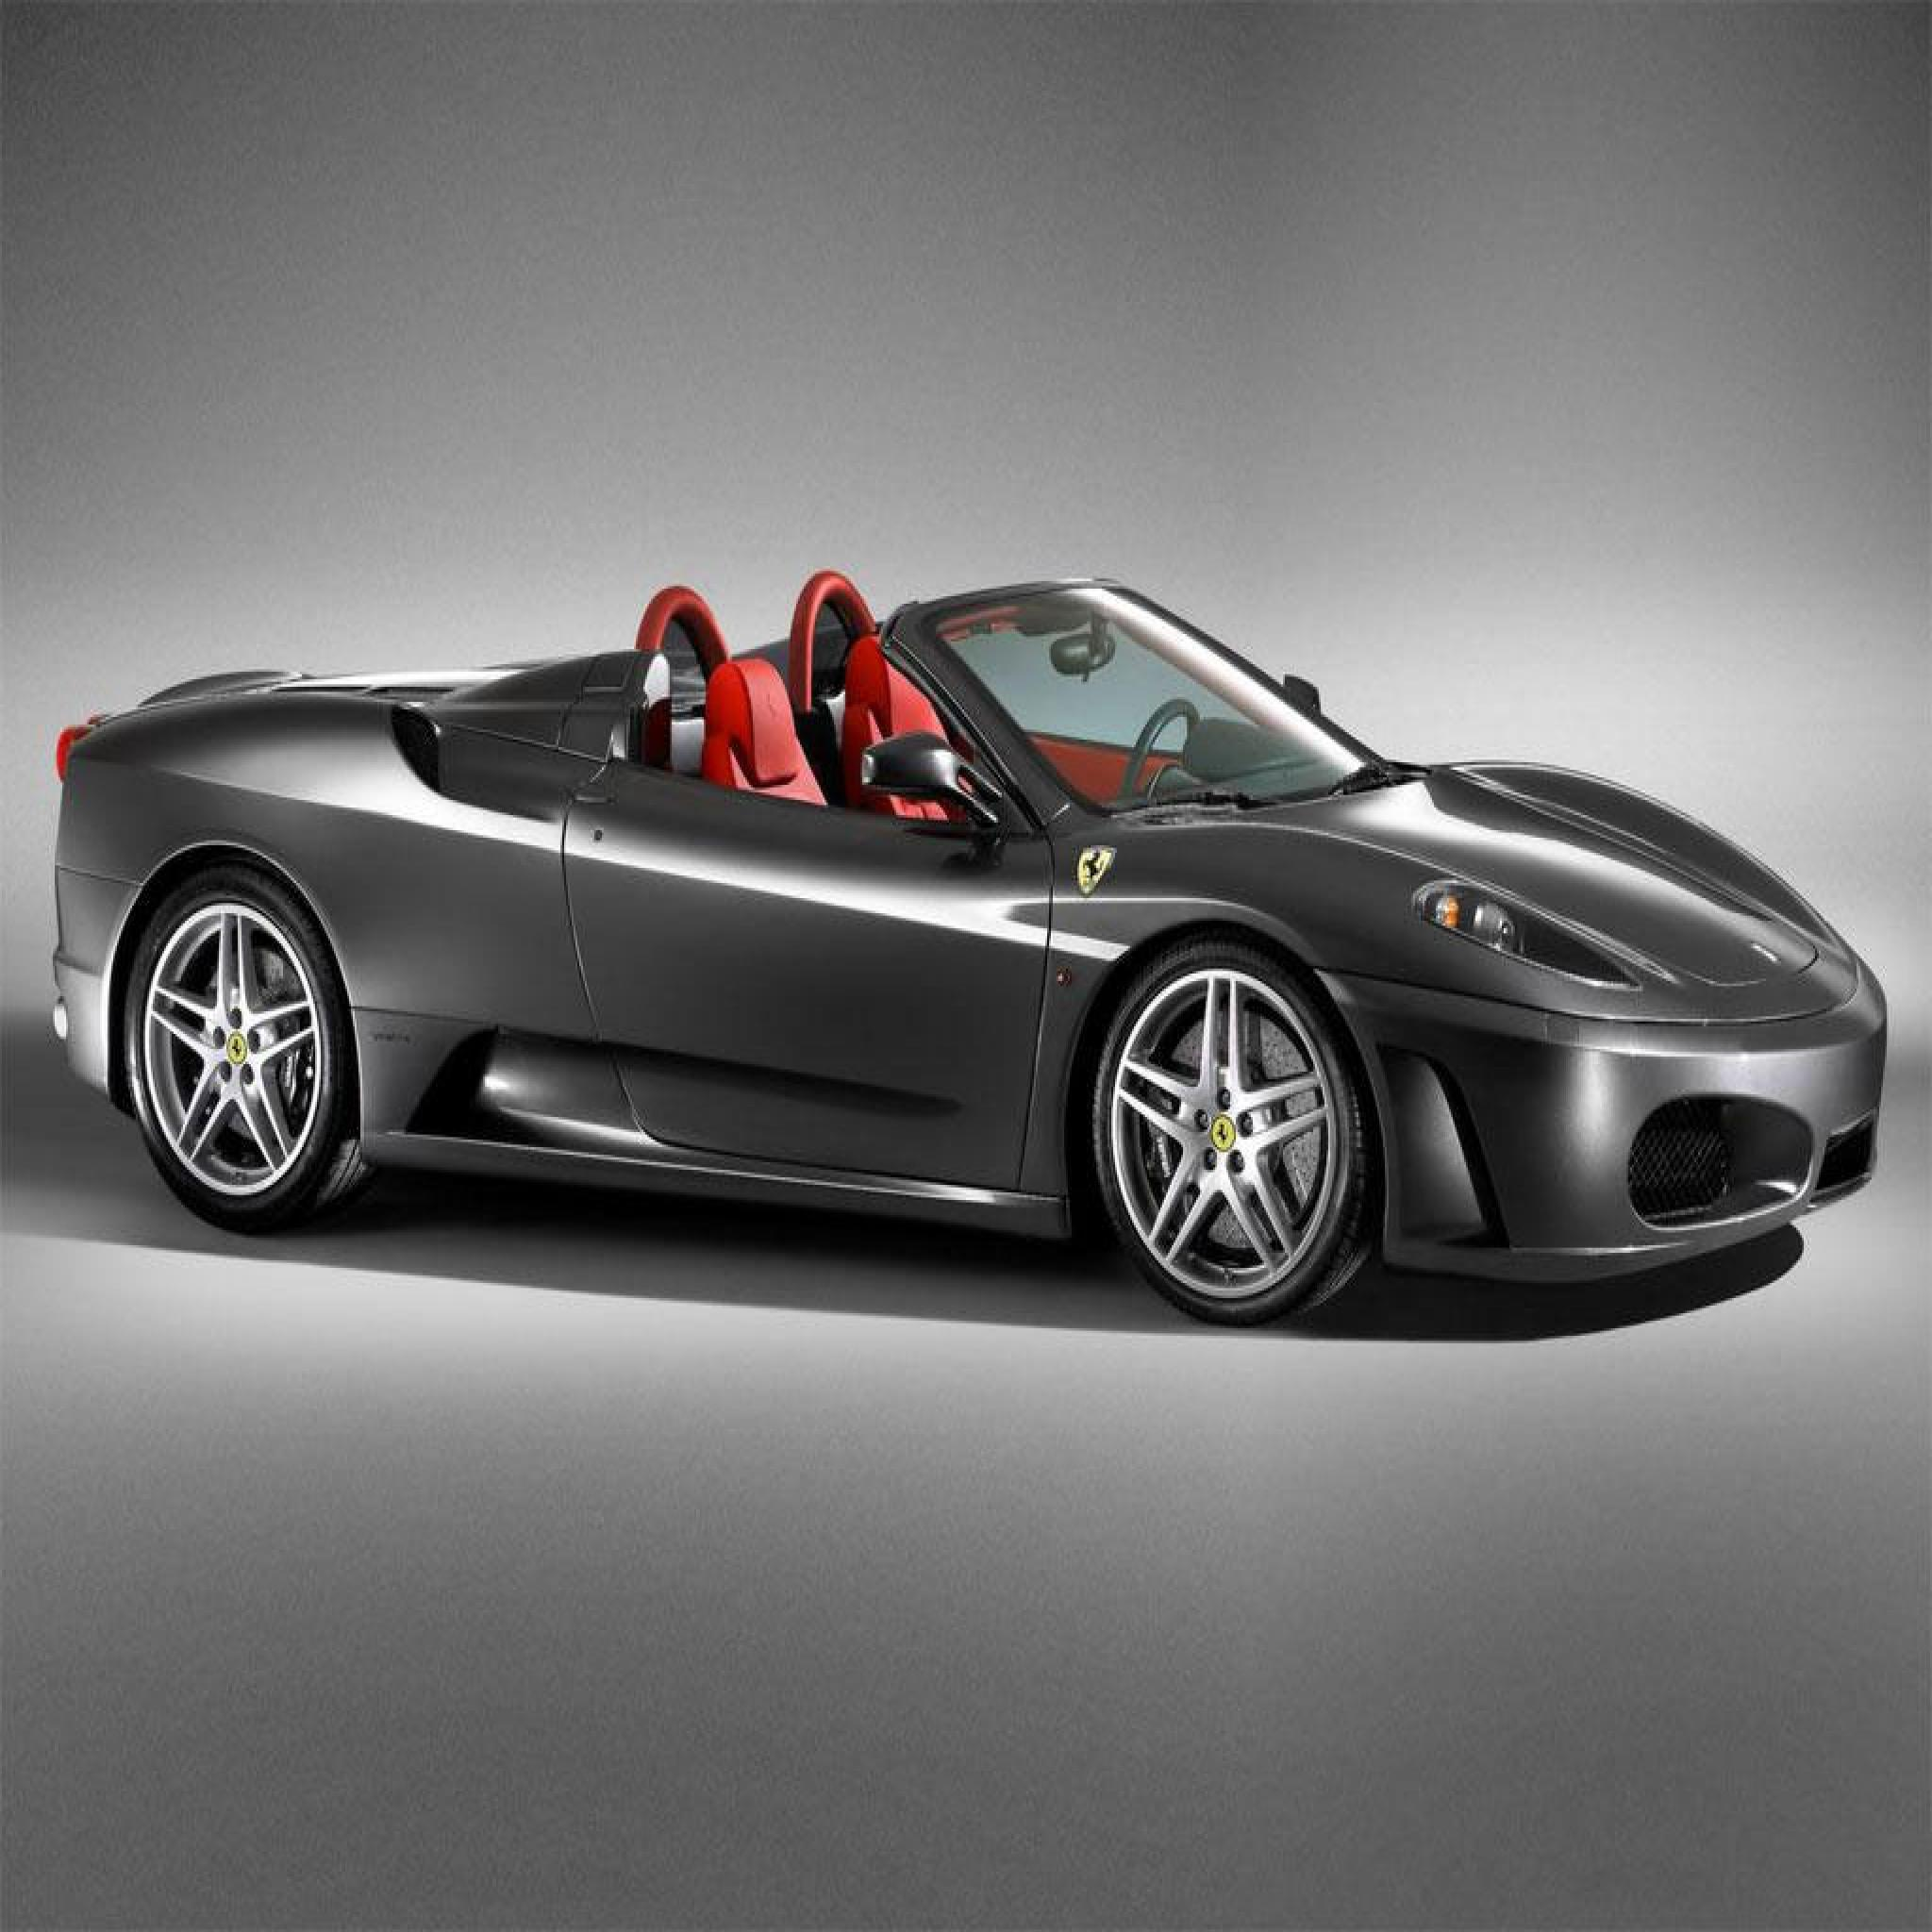 Car HD Wallpapers for all resolution HD 2048x2048 Car Wallpapers 2048x2048